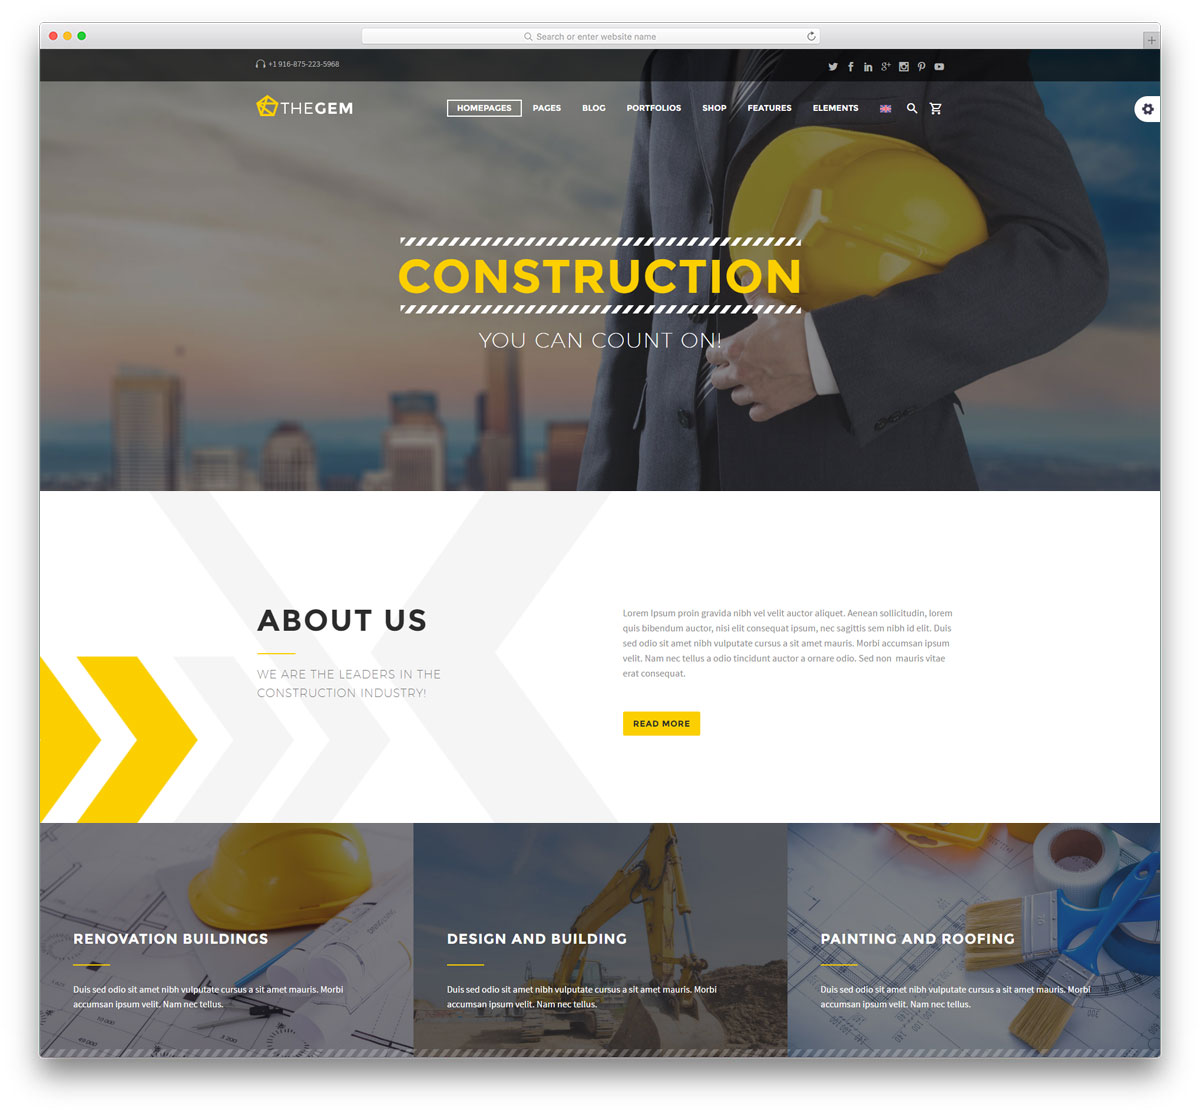 "thegem-construction-website-template ""width ="" 1200 ""height ="" 1113 ""data-lazy-srcset ="" https://cdn.colorlib.com/wp/wp-content/uploads/sites/2/thegem-construction -website-template.jpg 1200w, https://cdn.colorlib.com/wp/wp-content/uploads/sites/2/thegem-construction-website-template-300x278.jpg 300w, https: //cdn.colorlib .com / wp / wp-content / uploads / sites / 2 / thegem-construction-website-template-768x712.jpg 768w, https://cdn.colorlib.com/wp/wp-content/uploads/sites/2/ thegem-construction-website-template-1024x950.jpg 1024w ""data-lazy-tailles ="" (largeur max: 1200px) 100vw, 1200px ""data-lazy-src ="" https://cdn.colorlib.com/wp/ wp-content / uploads / sites / 2 / thegem-construction-website-template.jpg? is-waiting-load = 1 ""srcset ="" données: image / gif; base64, R0lGODlhAQABAAAAAAAAAP /// yH5BAAAAAAALAAAAAAAAAAAAAAAAP7 ""/></p> <p><noscript><img class="